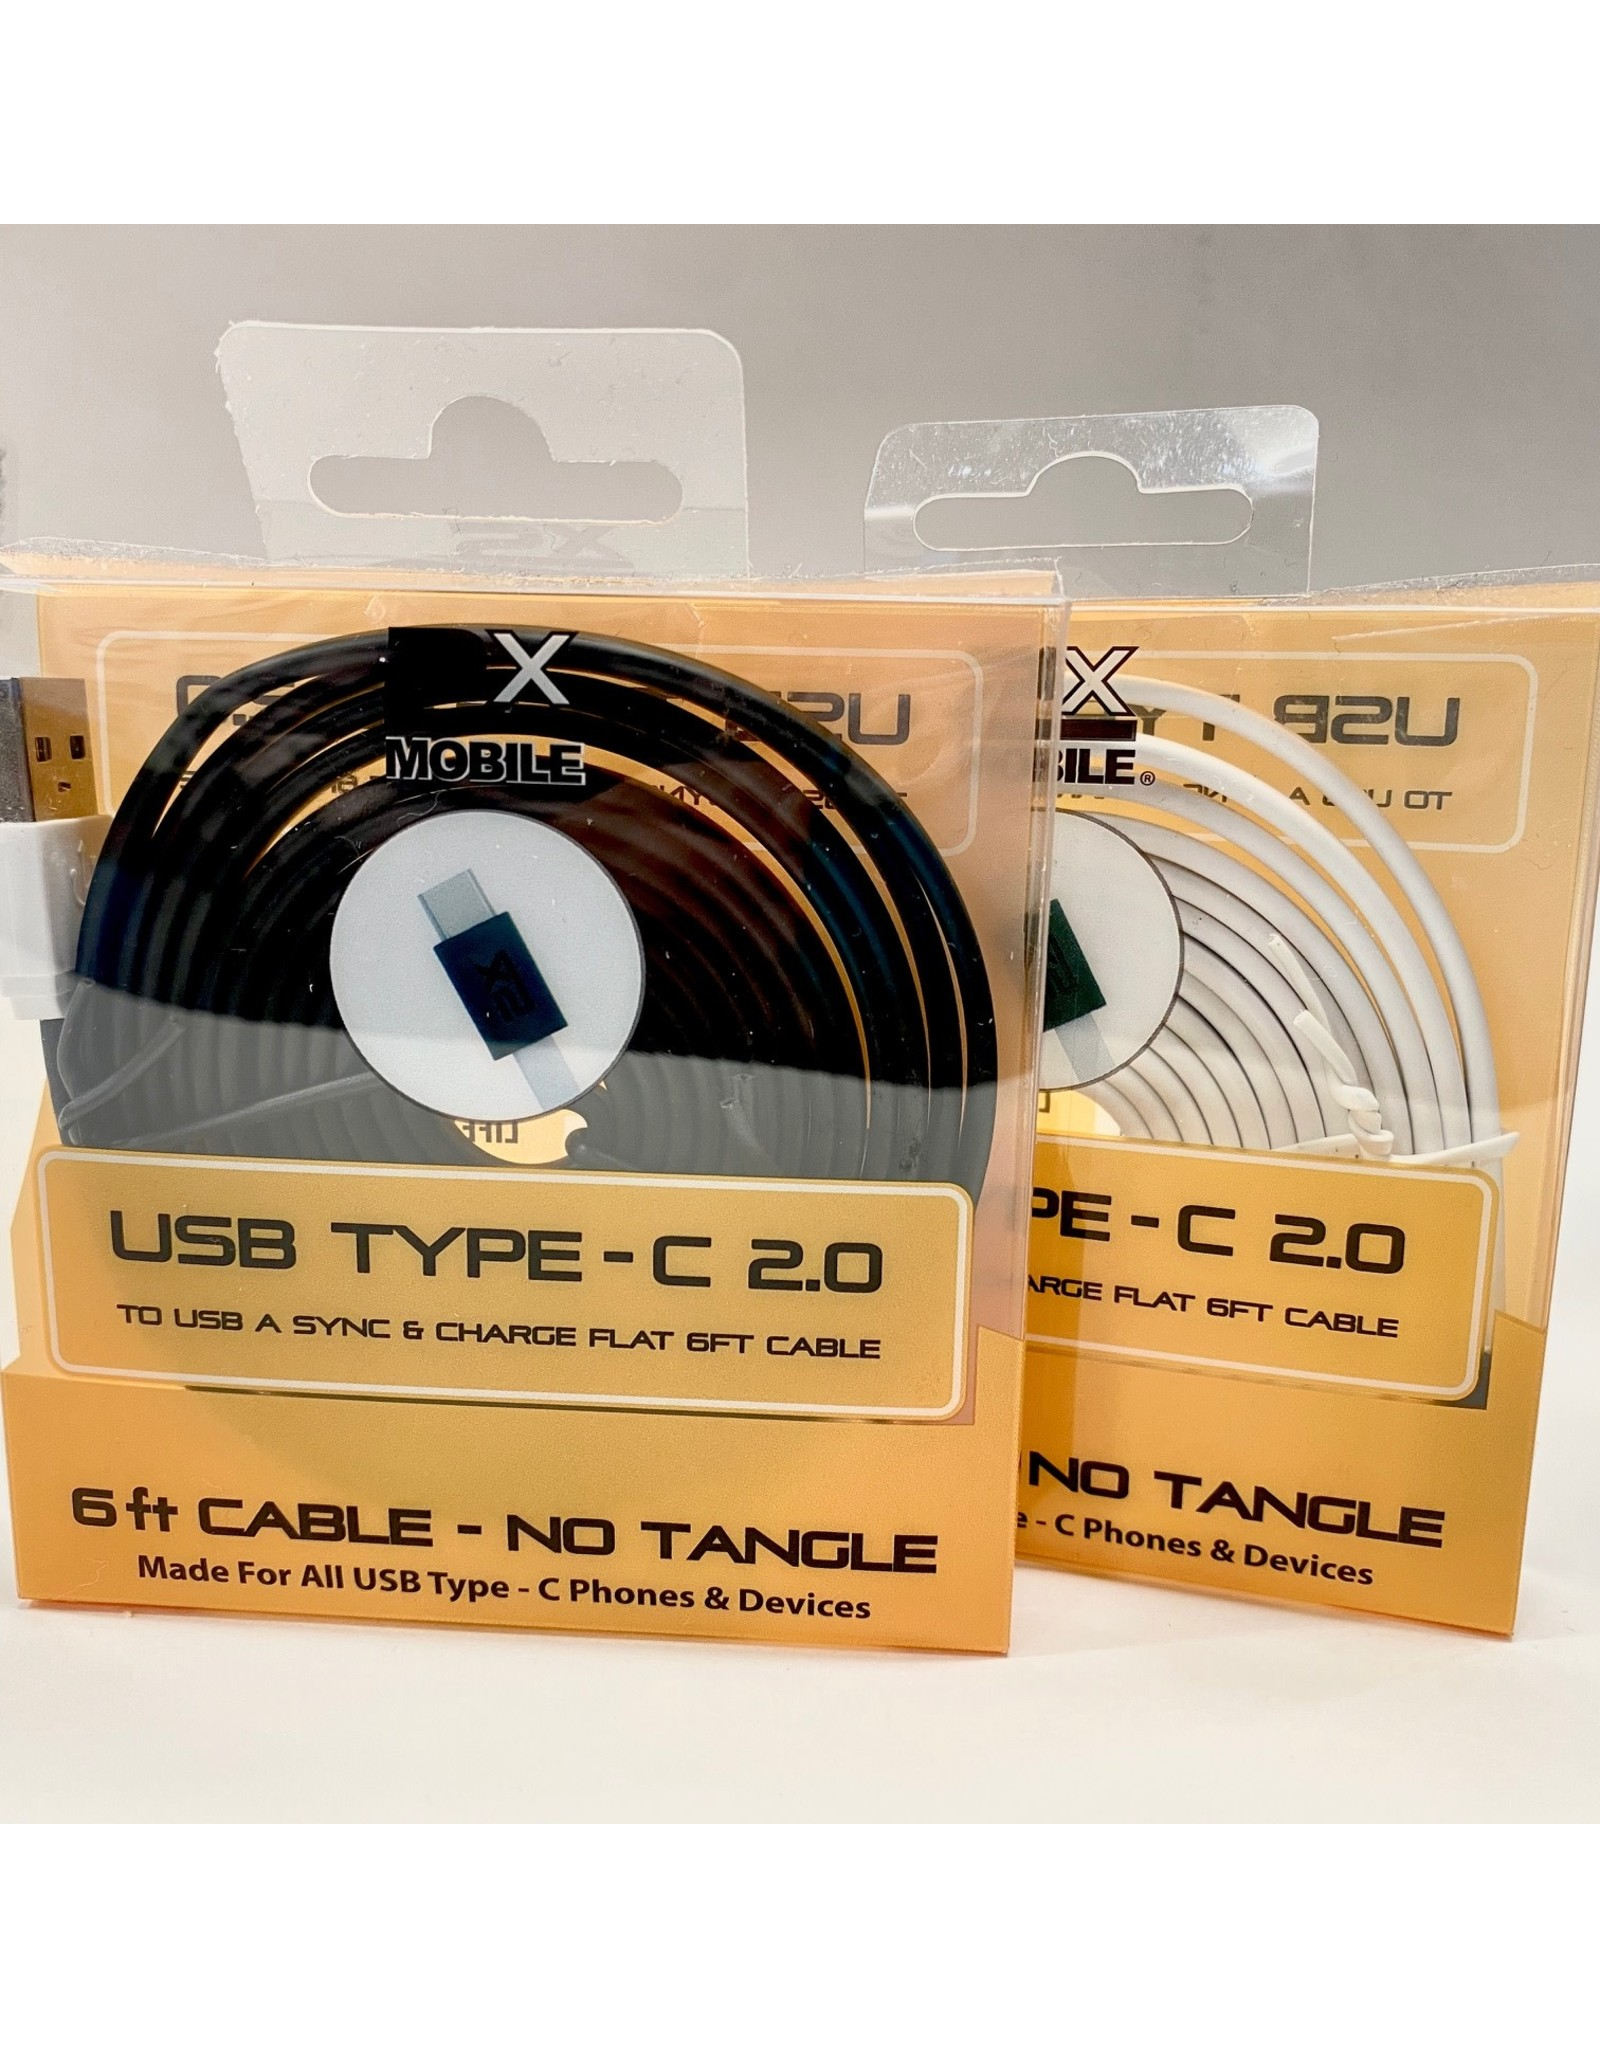 2X MOBILE USB Type C 2.0 Cable